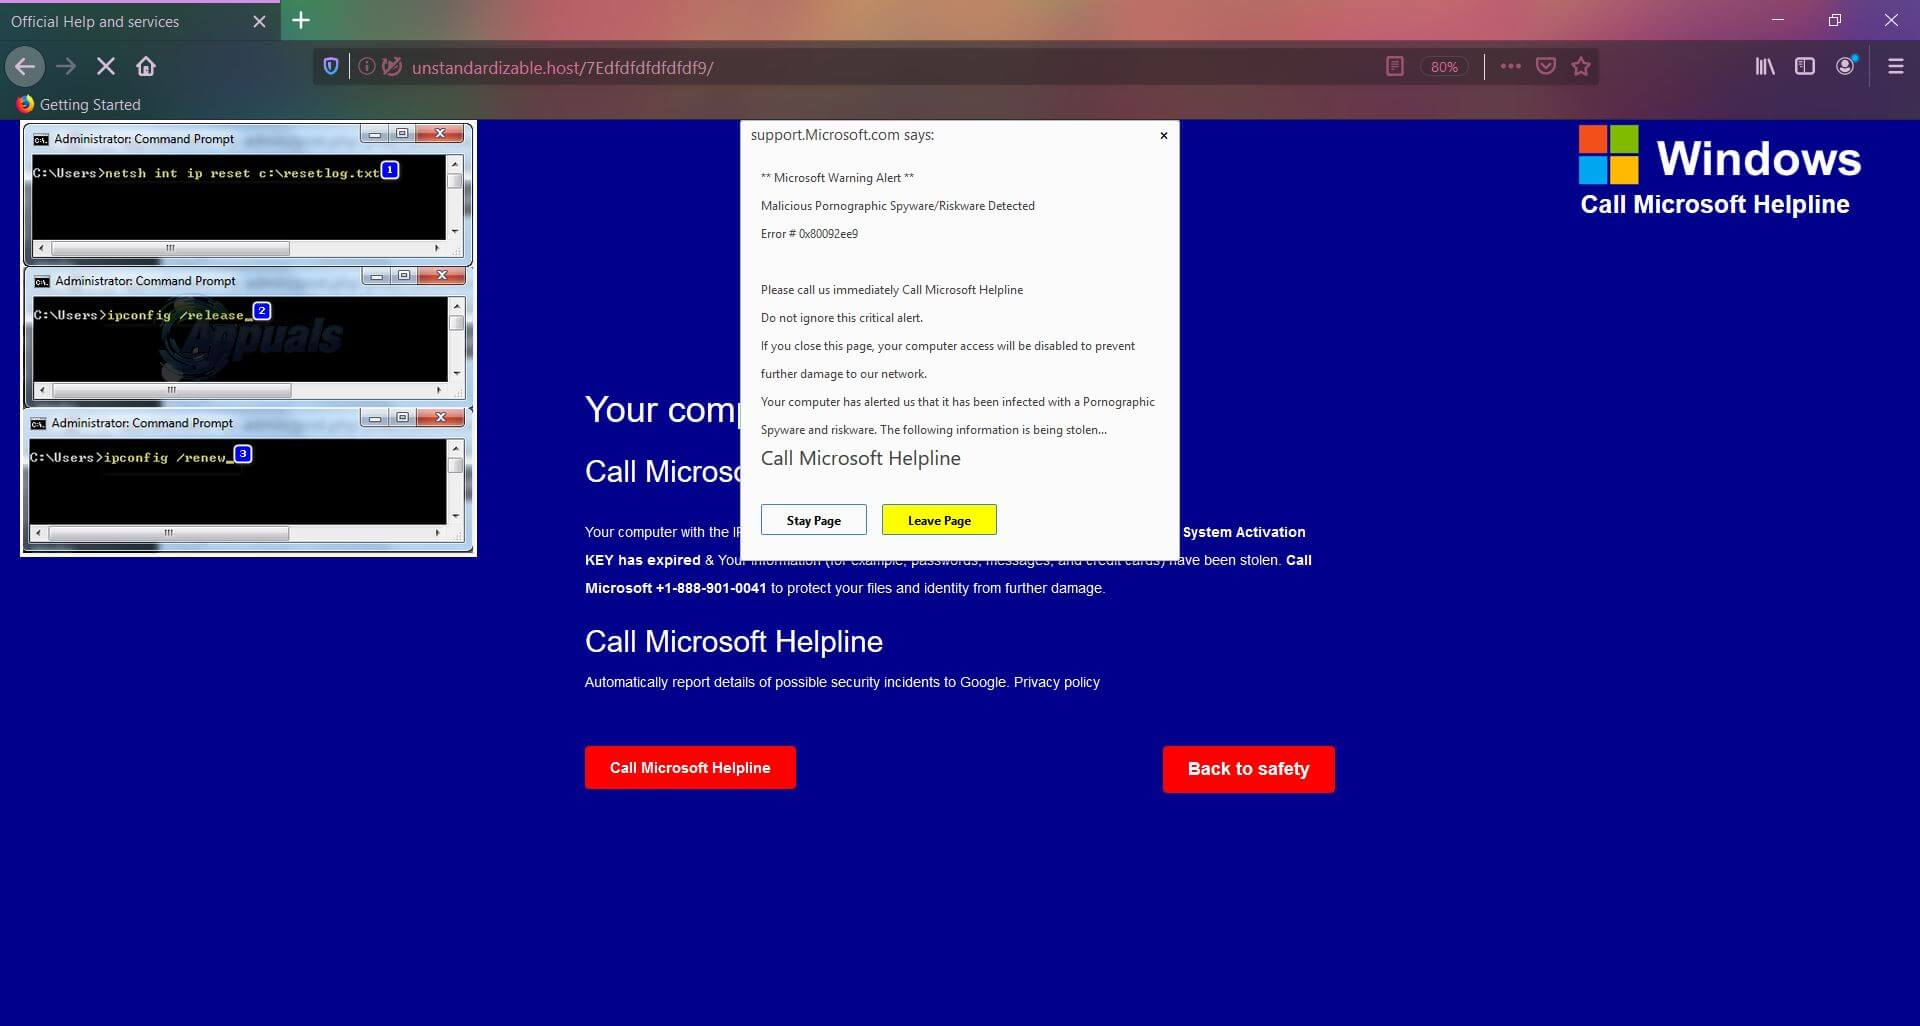 ringe til Microsoft hotline +1-888-901-0041 pop-up-fidus fjernelse guide sensorstechforum